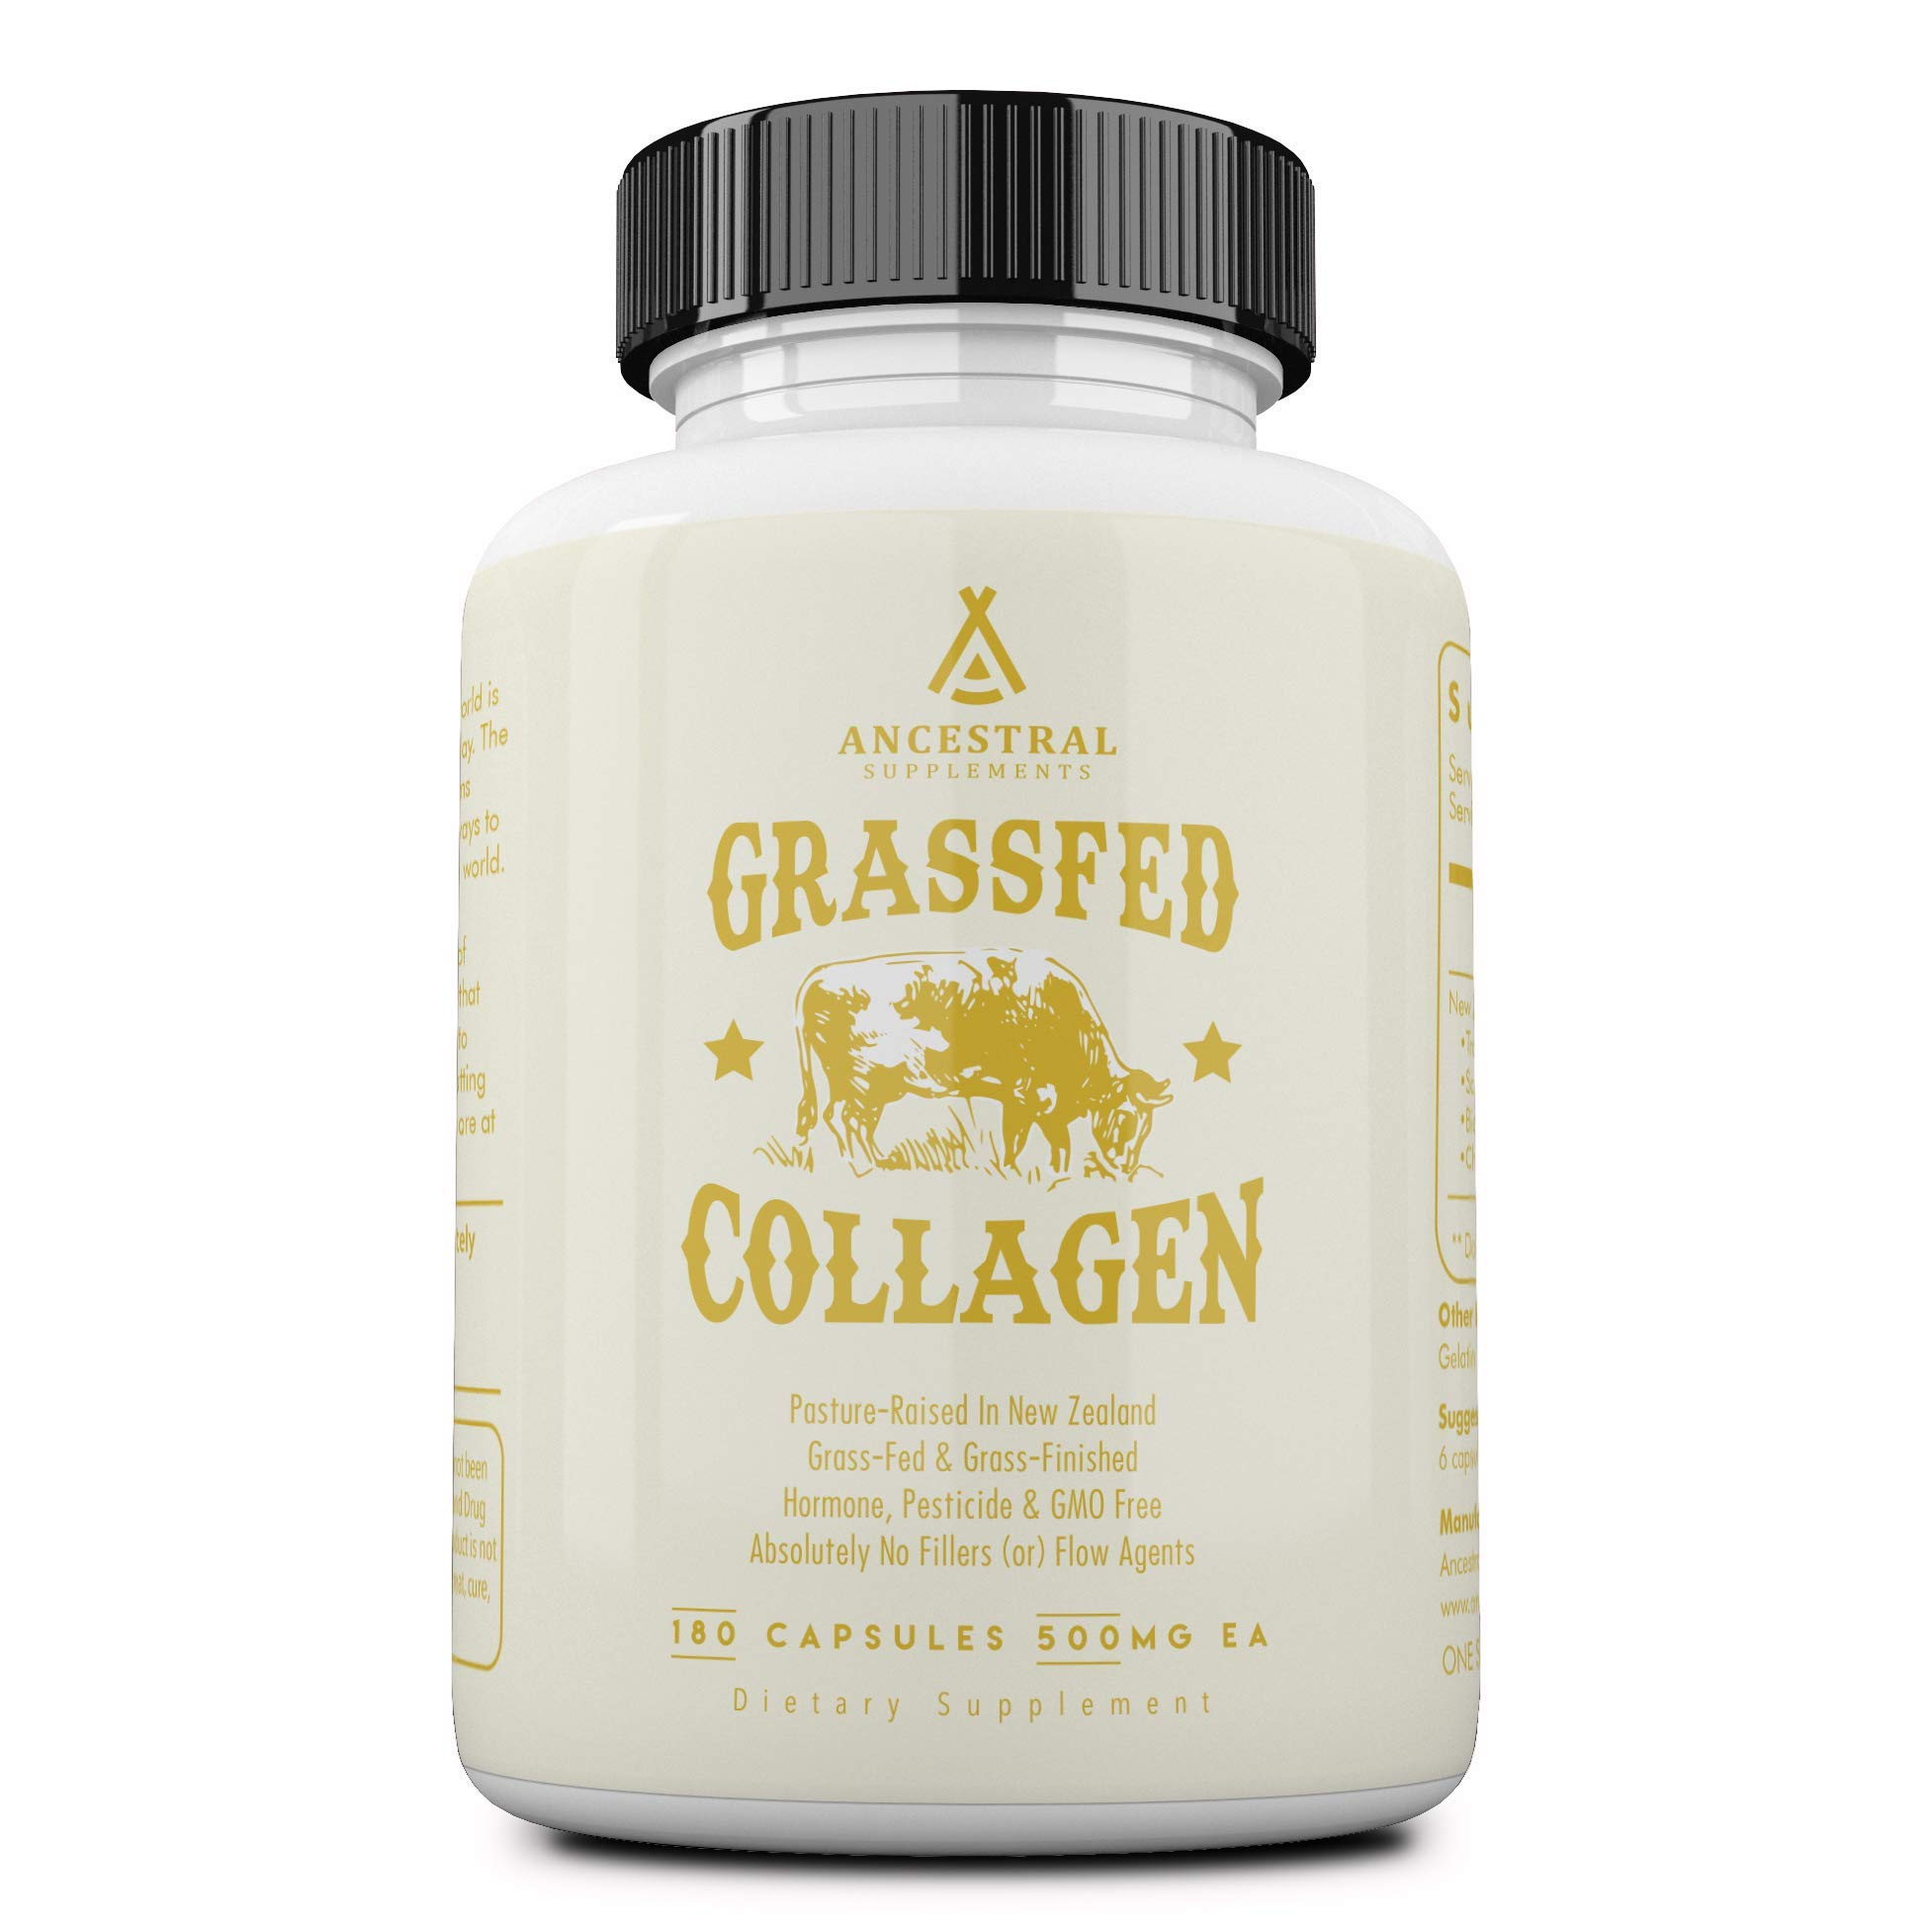 Ancestral Supplements Grass Fed (Living) Collagen-Supports Joints, Marrow Bones, Cartilage, Skin, Hair, Nails (180 Capsules) by Ancestral Supplements